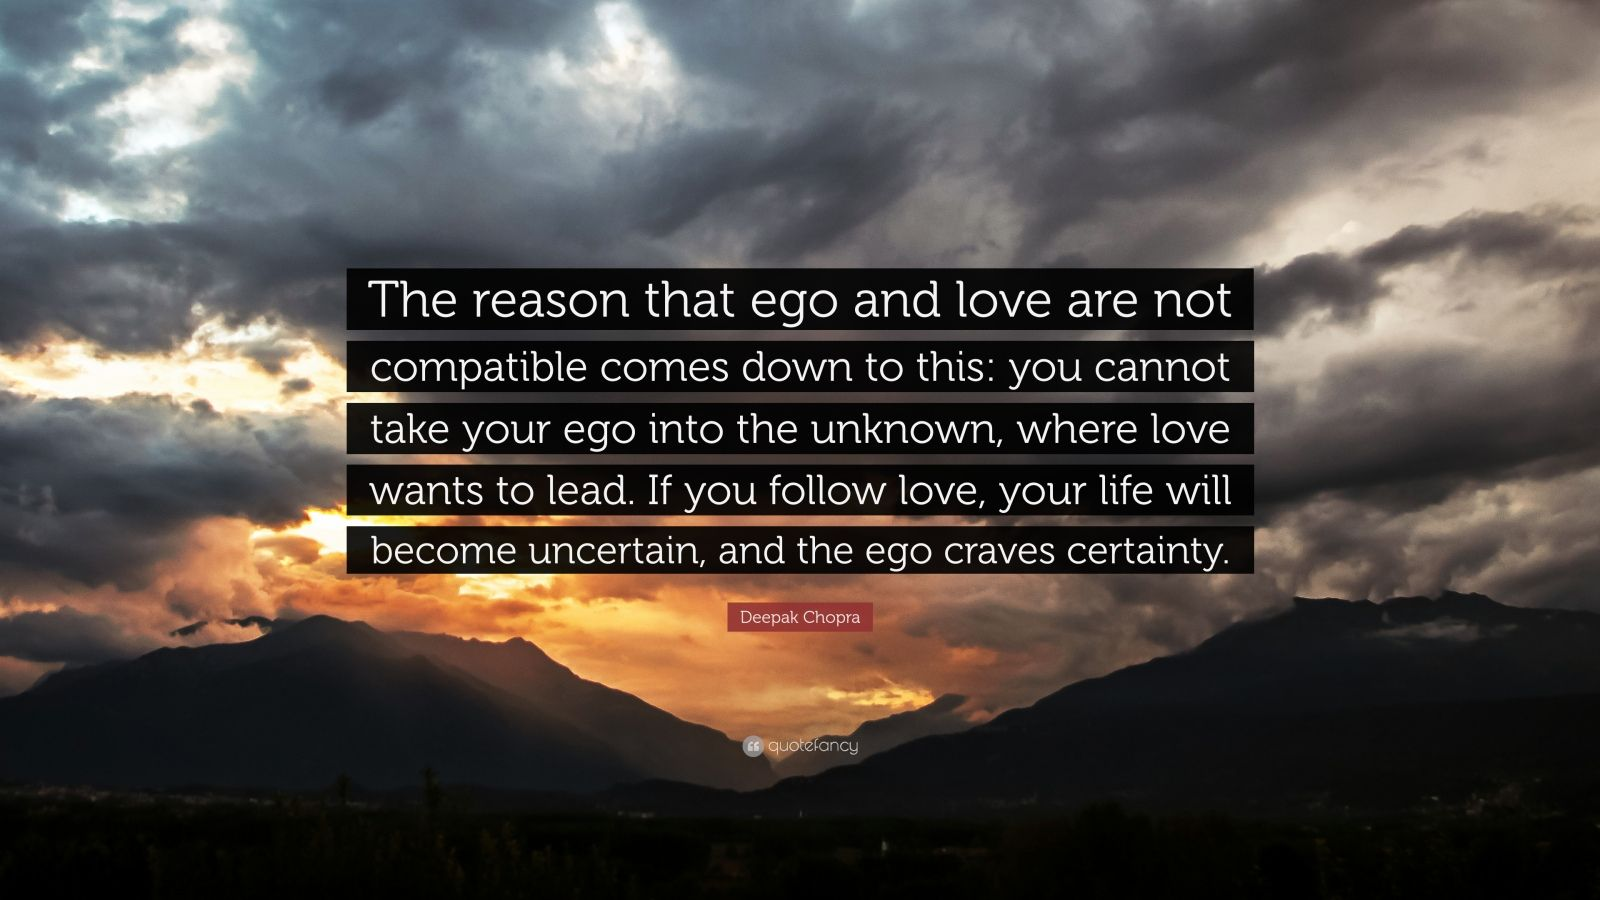 """Deepak Chopra Quote: """"The reason that ego and love are not compatible comes down to this: you cannot take your ego into the unknown, where love wants to lead. If you follow love, your life will become uncertain, and the ego craves certainty."""""""